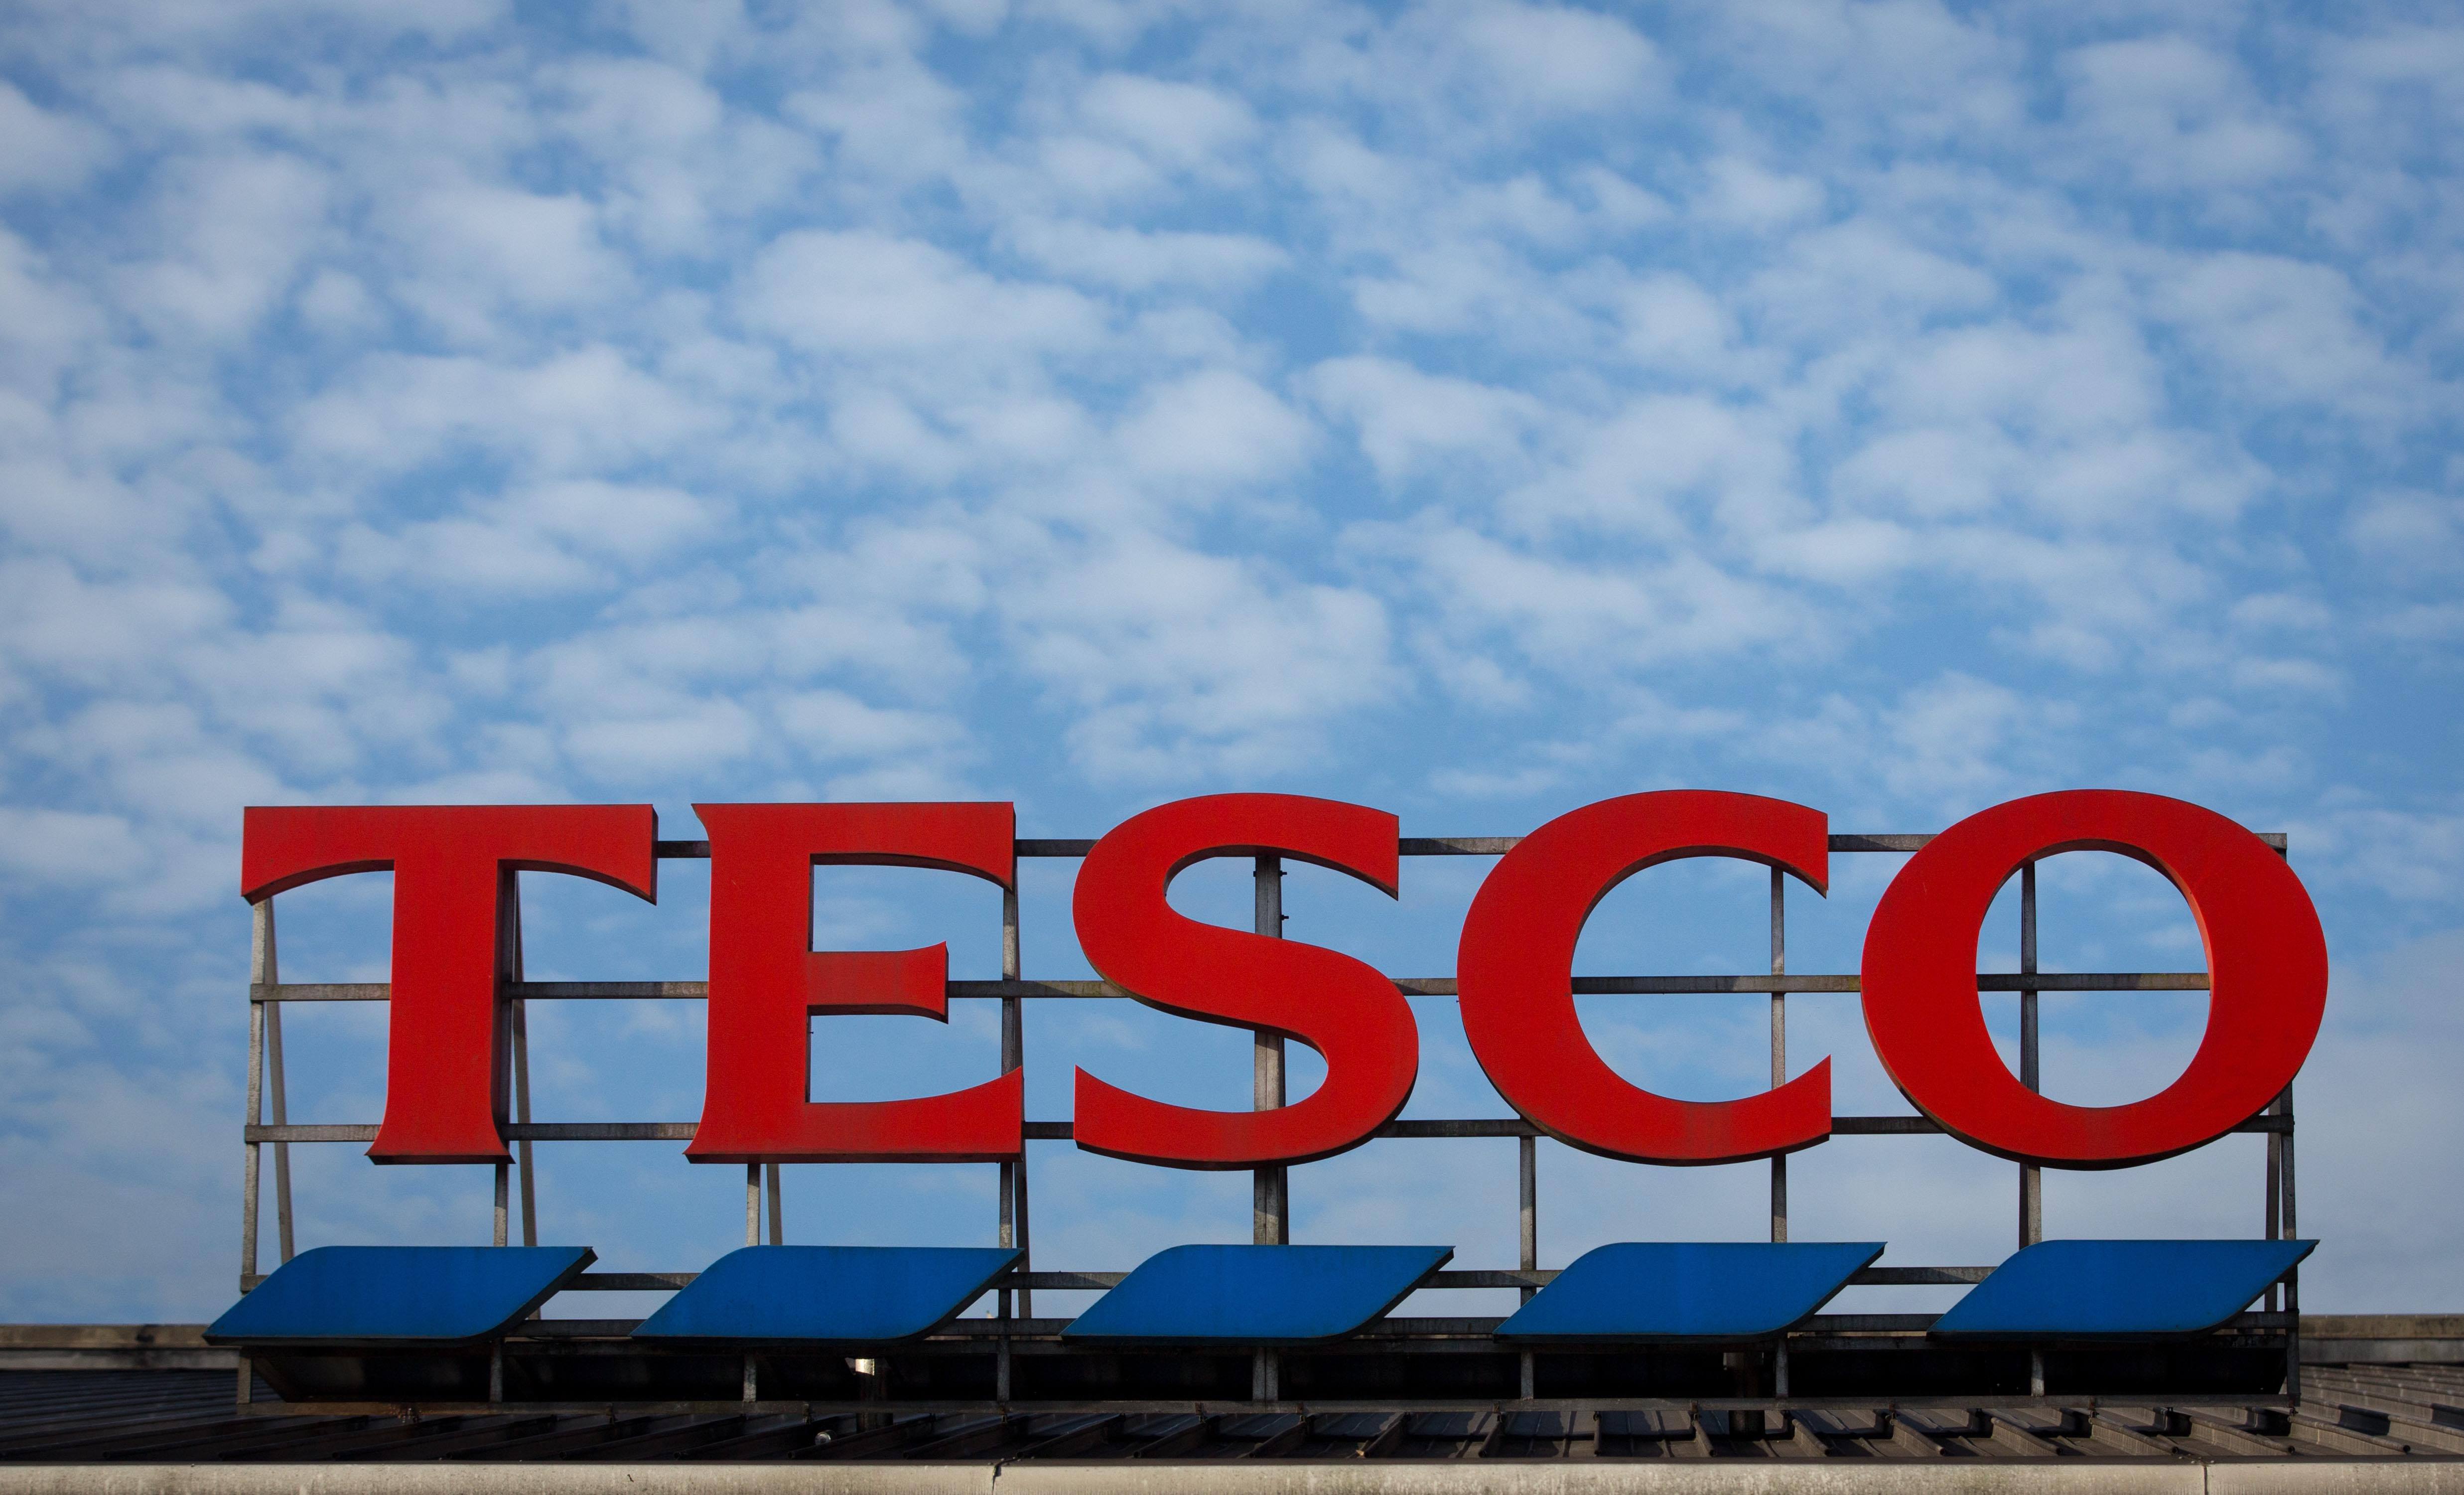 BRISTOL, ENGLAND - NOVEMBER 18: The Tesco sign is displayed outside a branch of the supermarket on November 18, 2015 in Bristol, England. As the crucial Christmas retail period approaches, all the major supermarkets are becoming increasingly competitive to retain and increase their share of the market. (Photo by Matt Cardy/Getty Images)